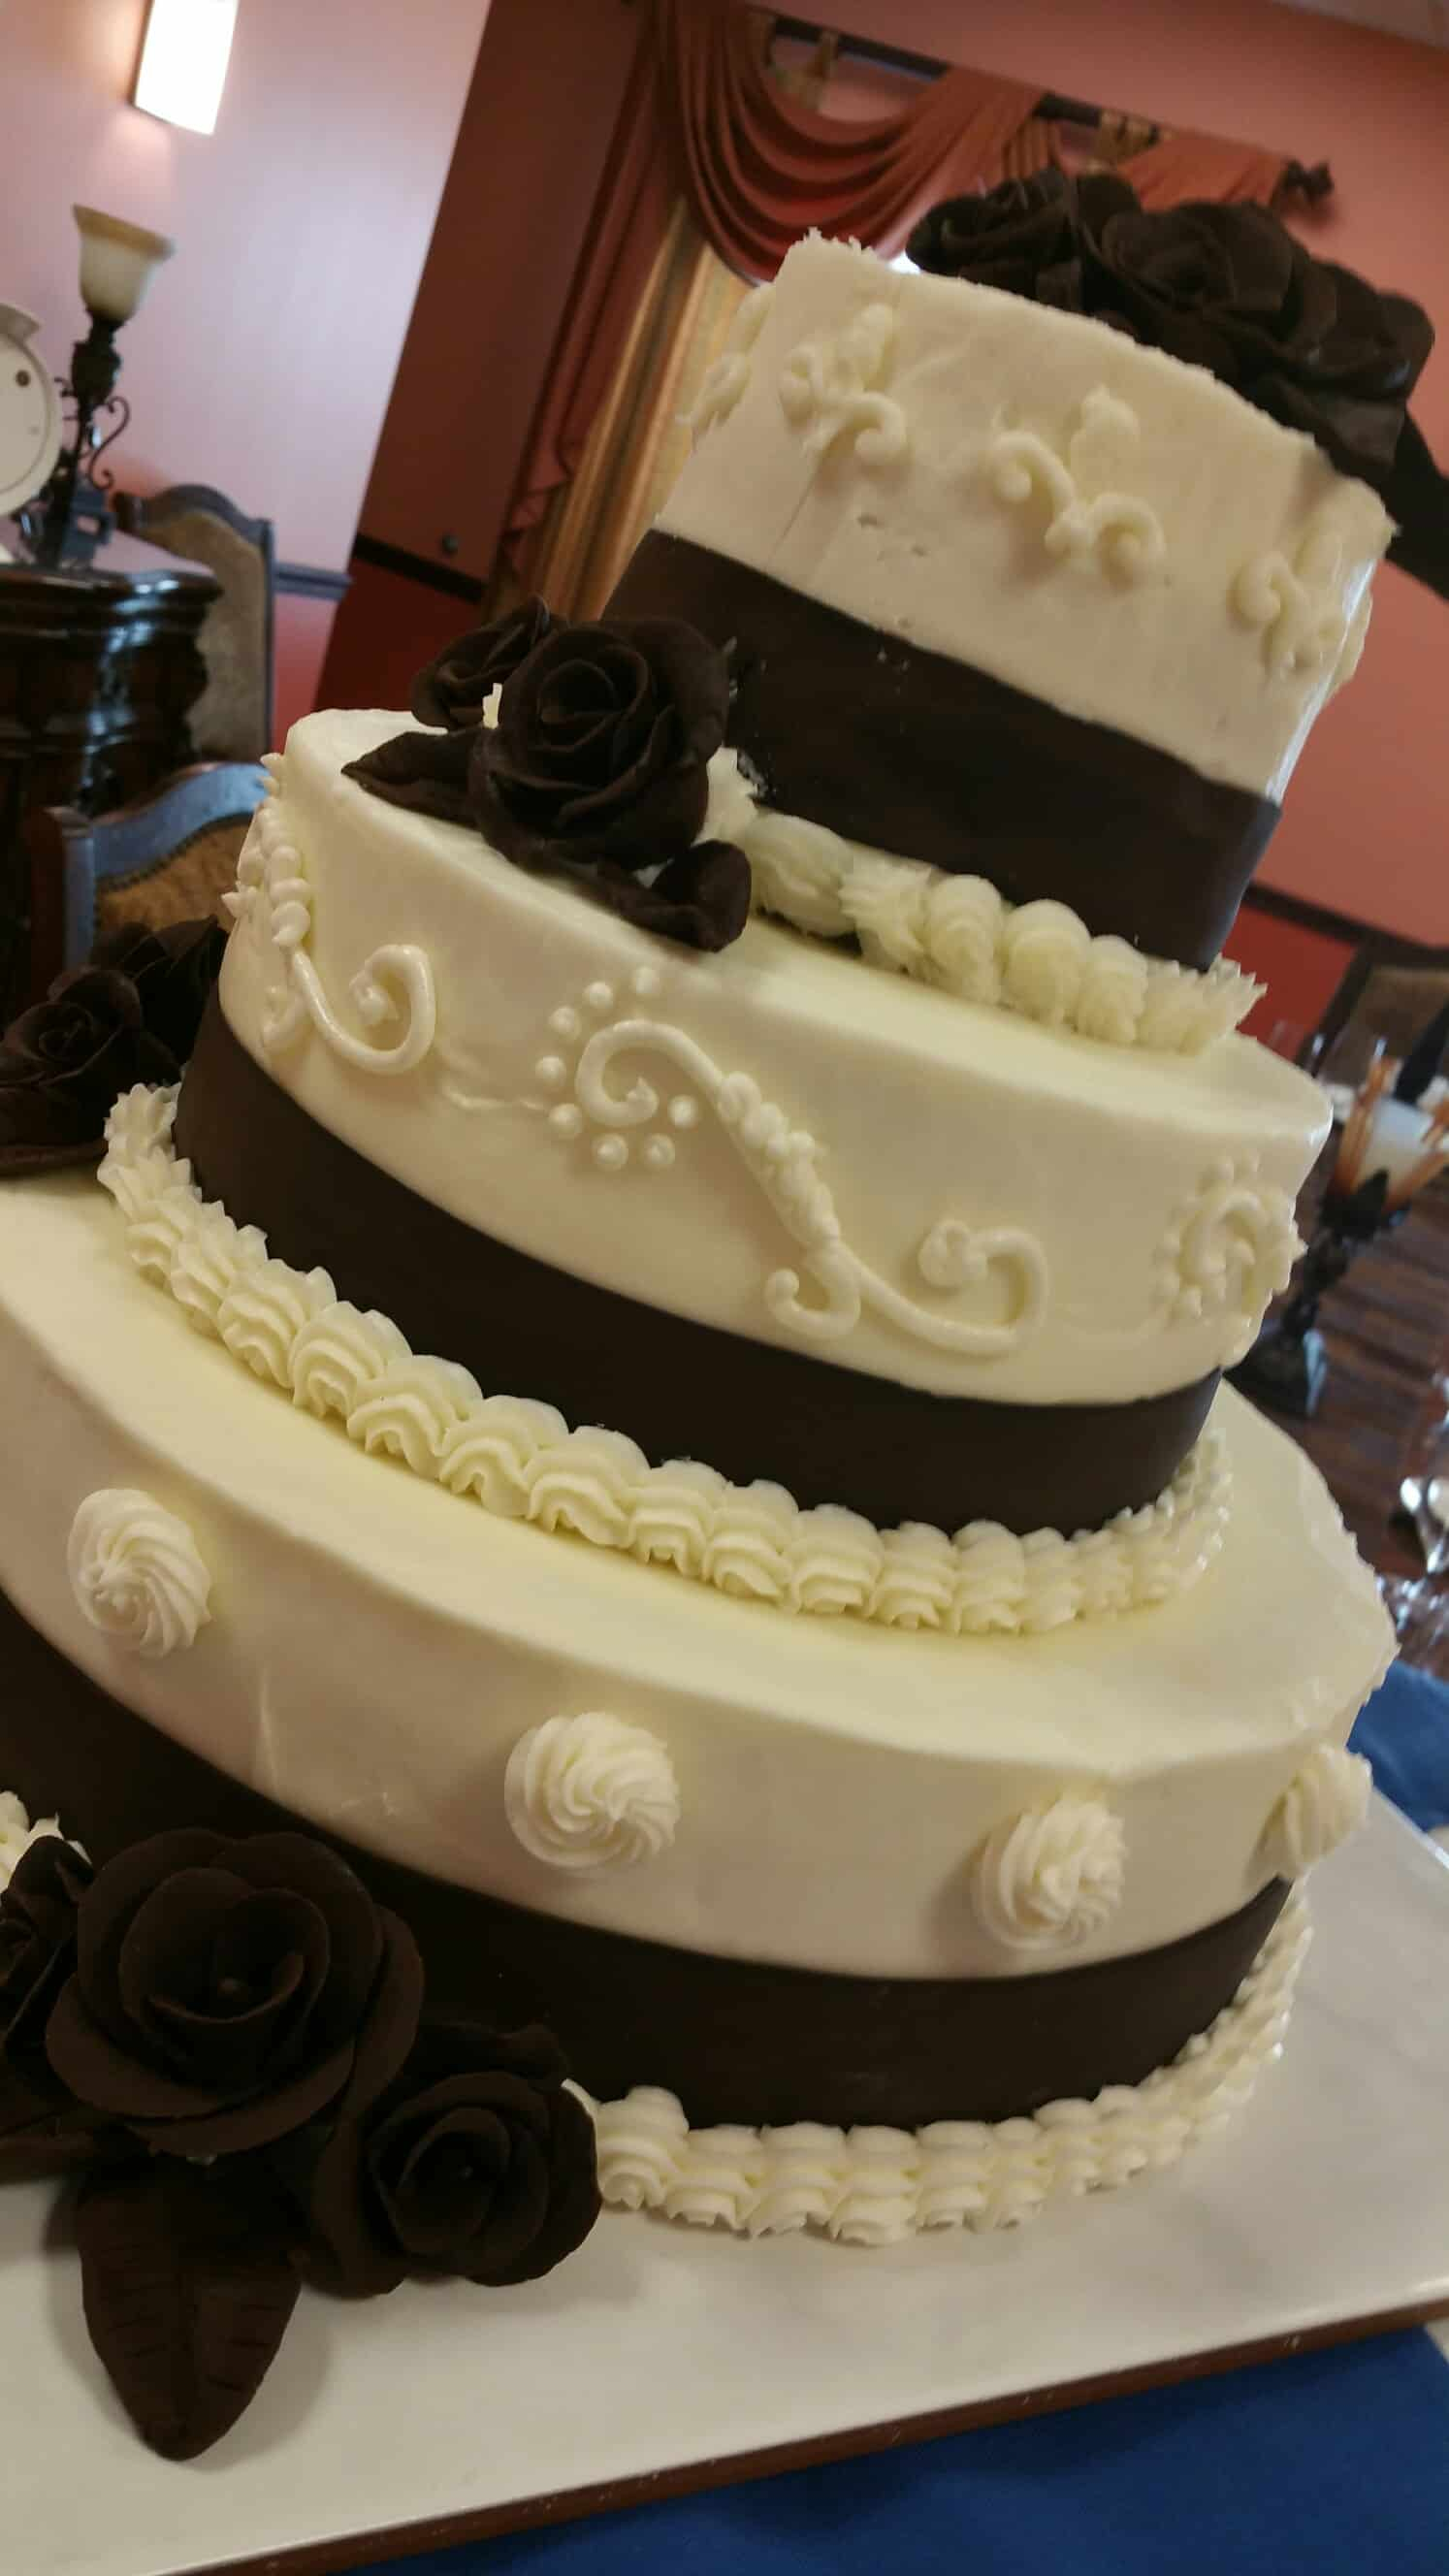 Sarasota's Center for Culinary Arts – Let Them Eat Cake